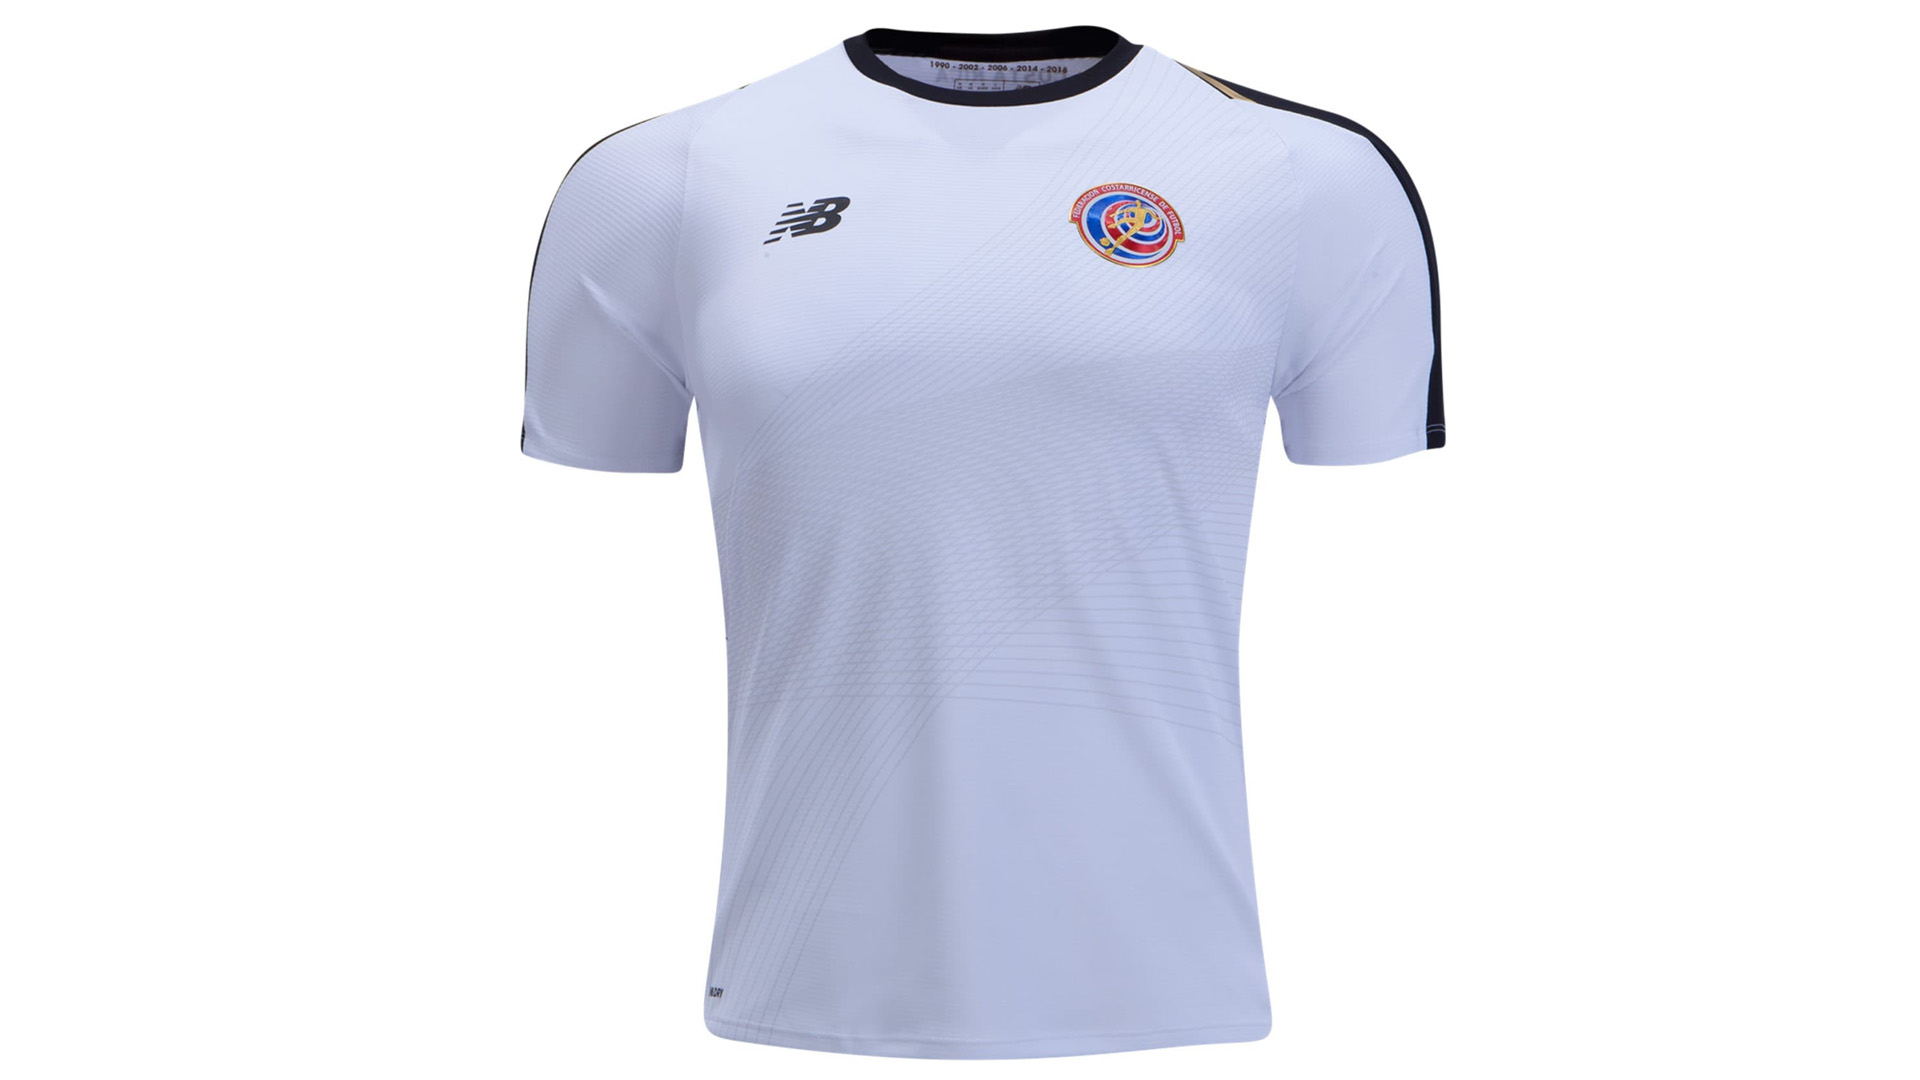 0c2860778e2c7 Costa Rica Camiseta Alternativa Away Kit 2018